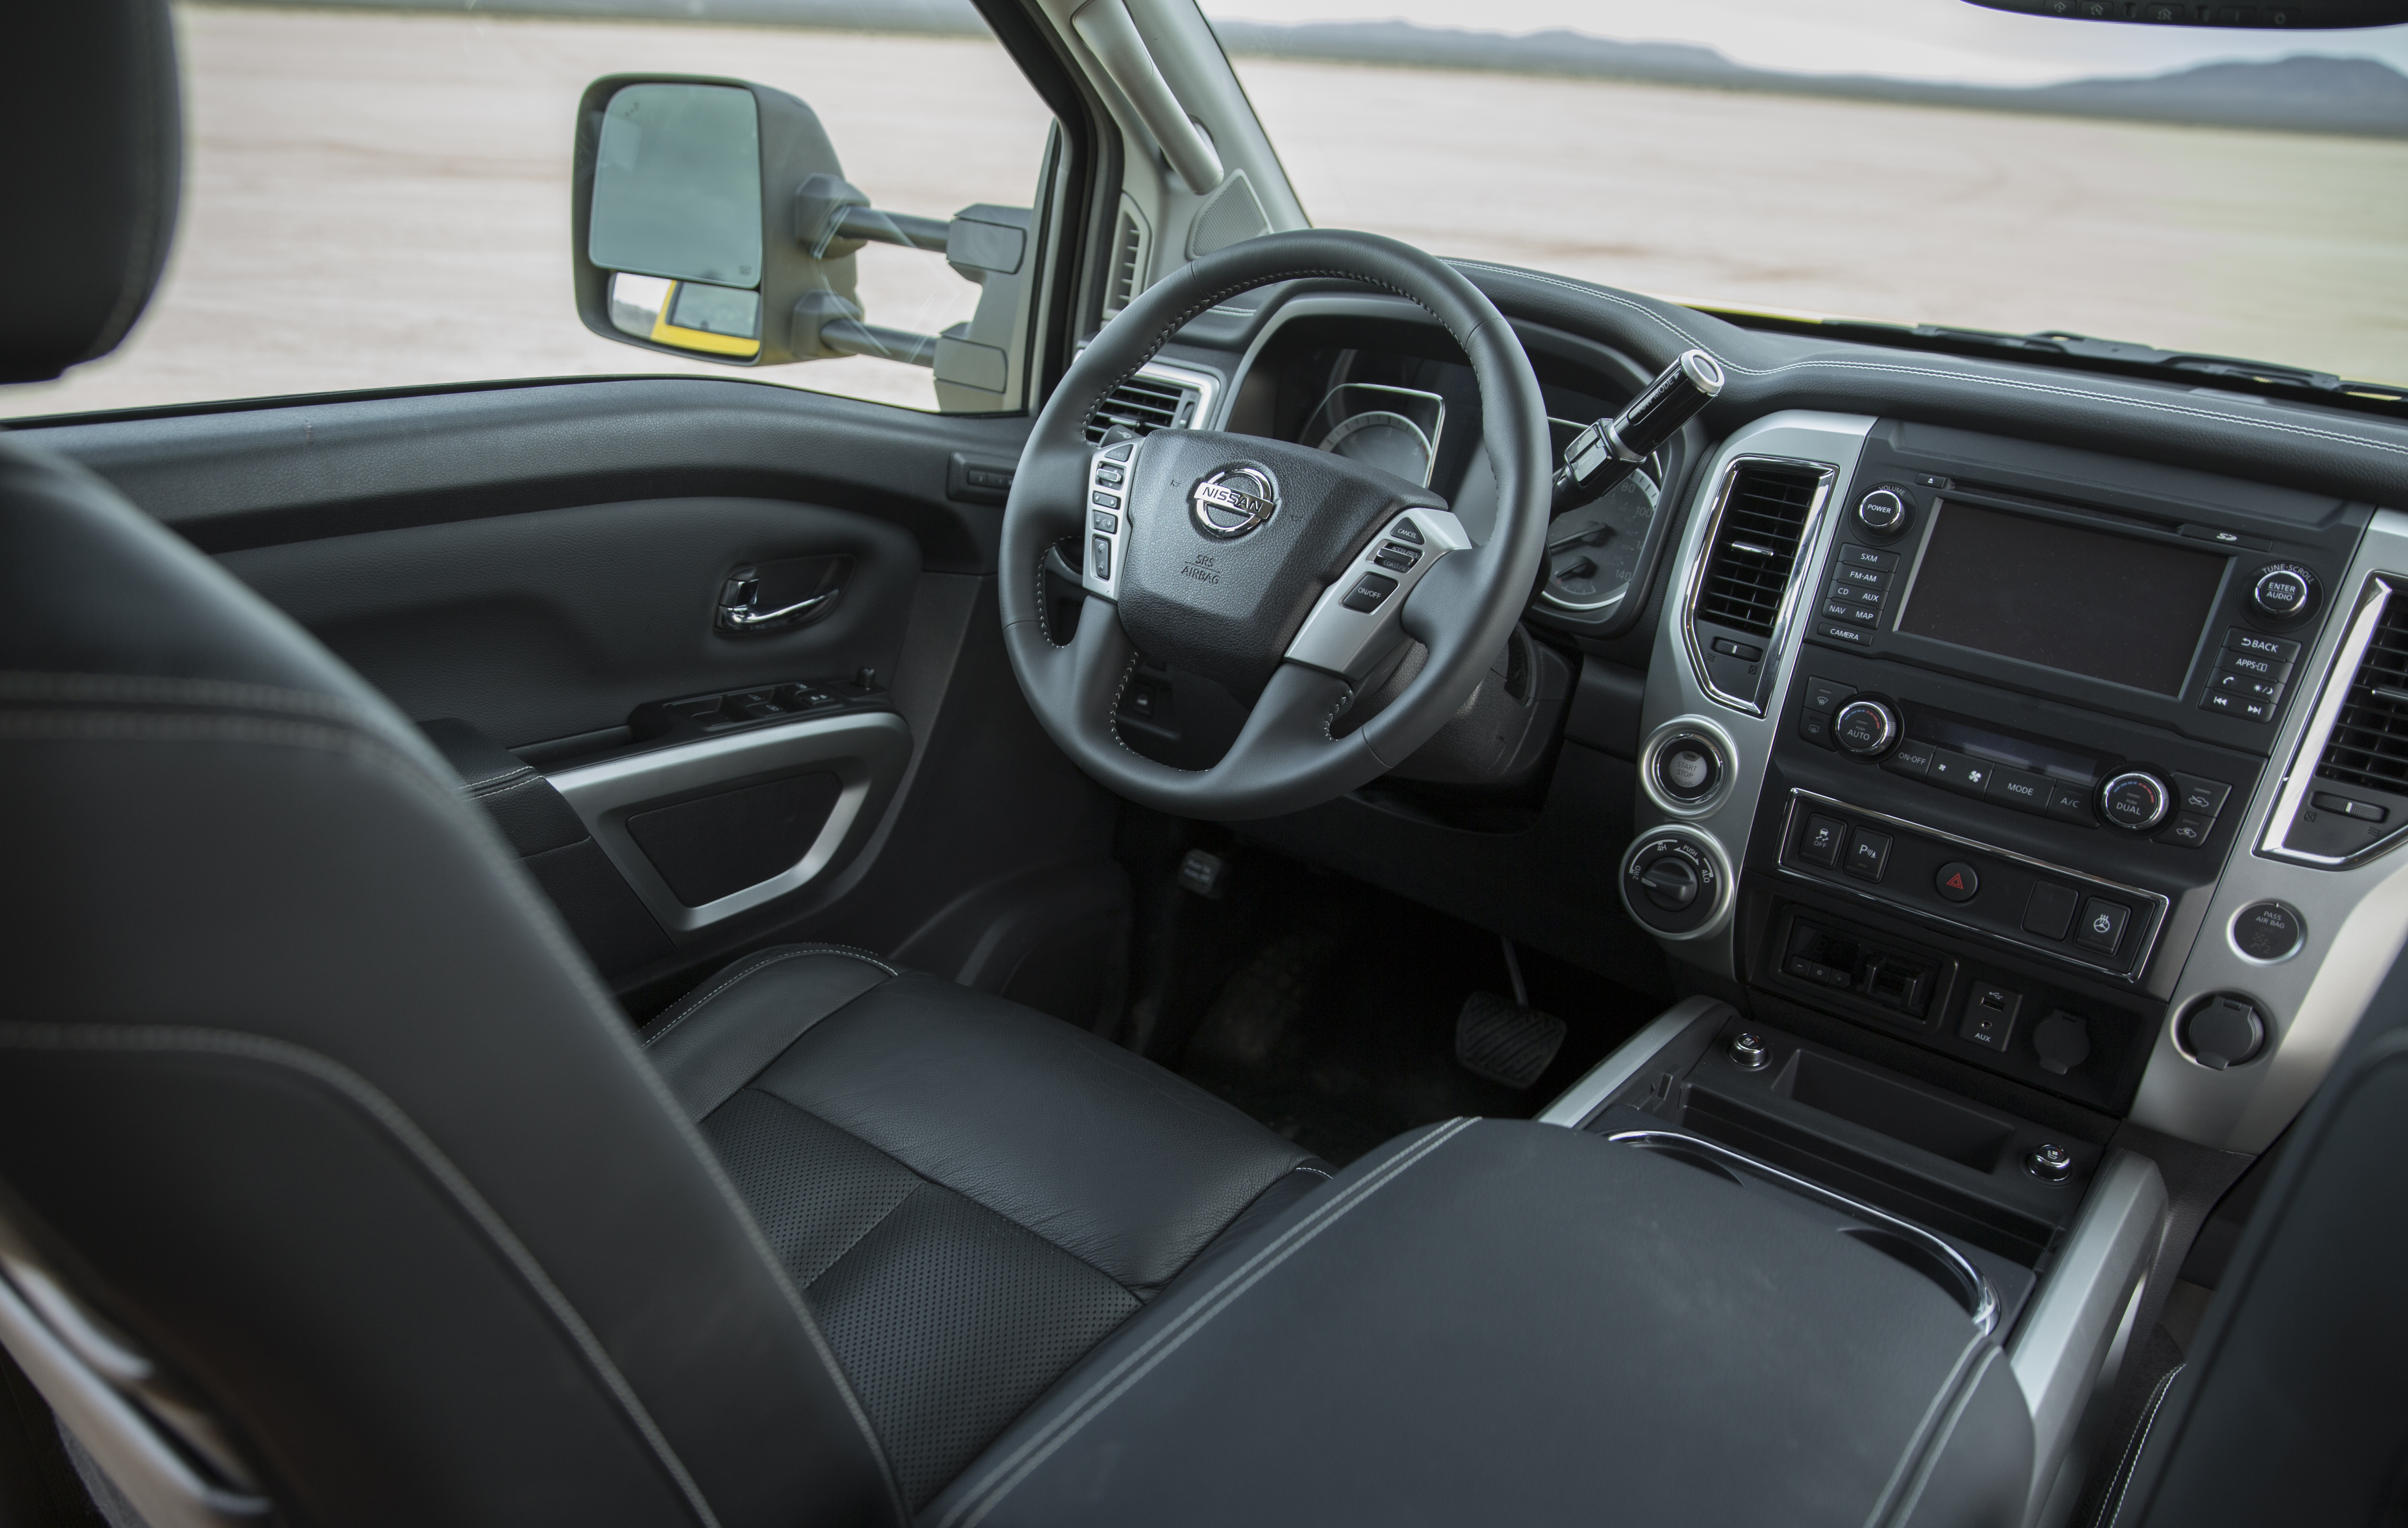 The 2017 Nissan TITAN XD Crew Cab is available in five well-equipped trim levels – S, SV, PRO-4X, SL and Platinum Reserve. All are offered with a choice of 4x2 or 4x4 drive configurations, except for the PRO-4X model, which is available exclusively as a 4x4.